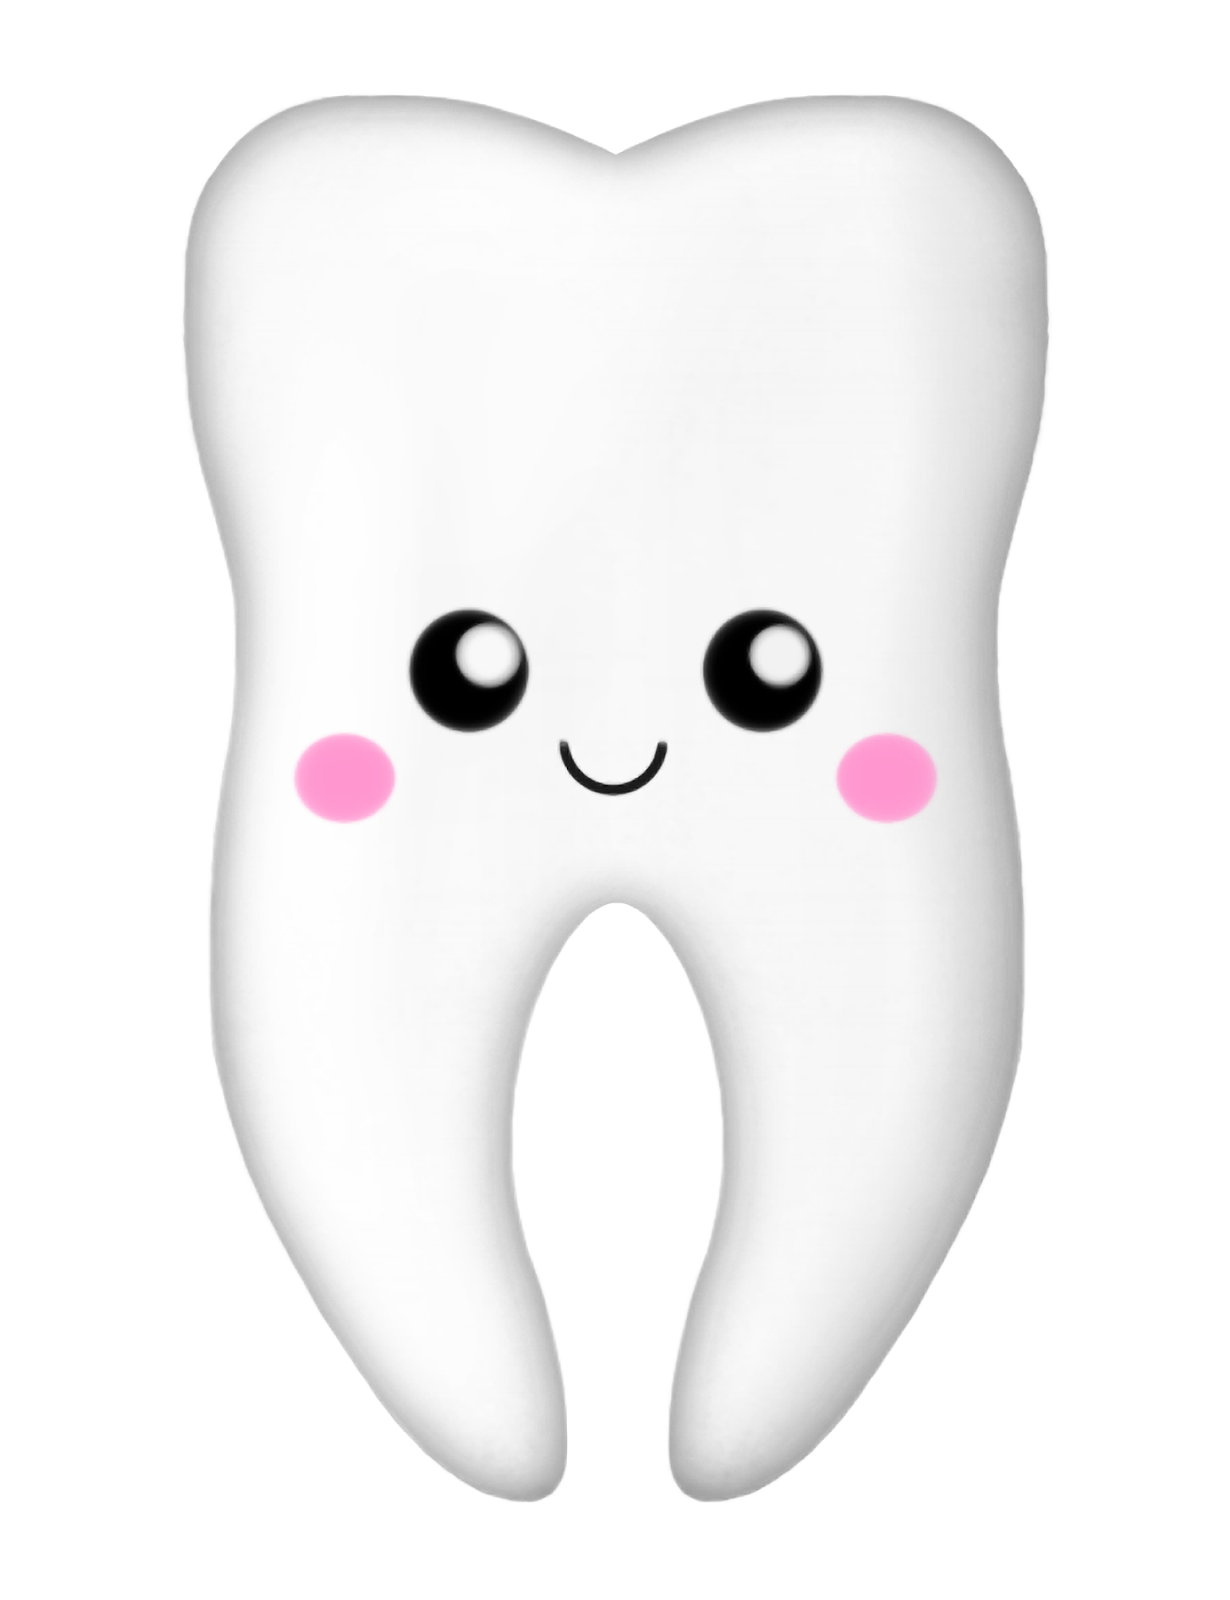 Tooth png recherche google. Clipart smile teethy